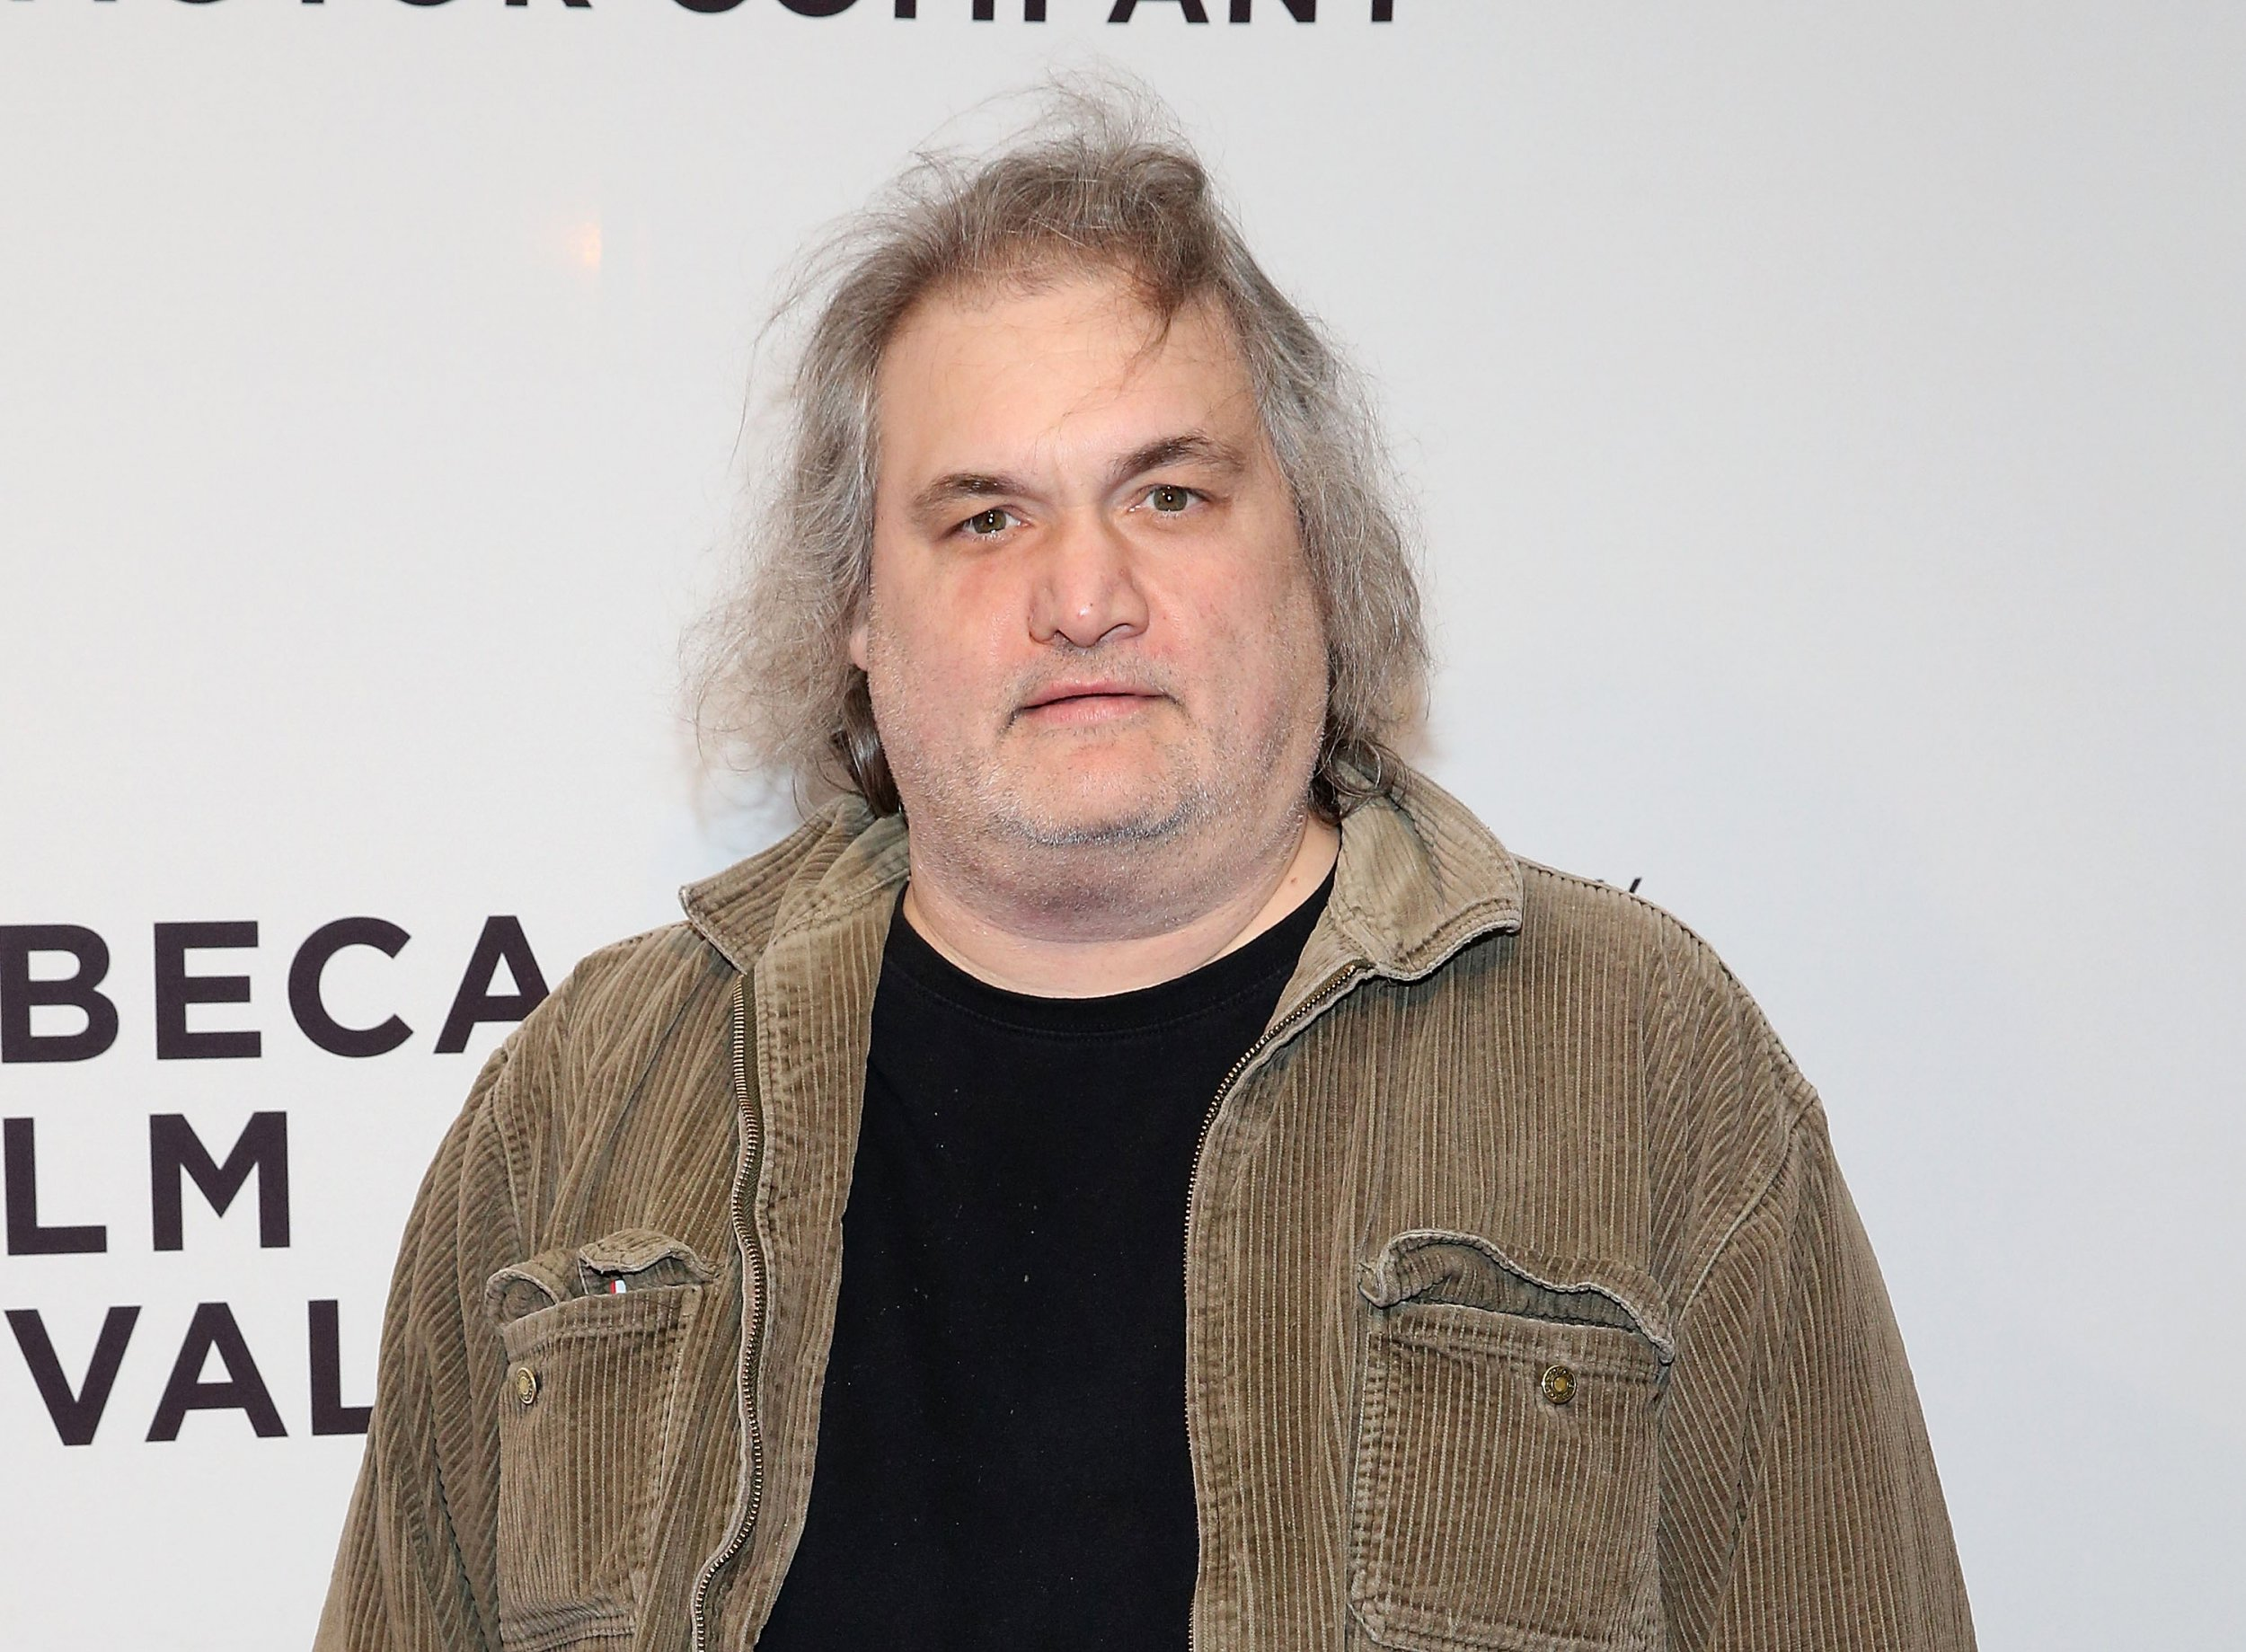 Artie artie, lange, arrest, jail, time,